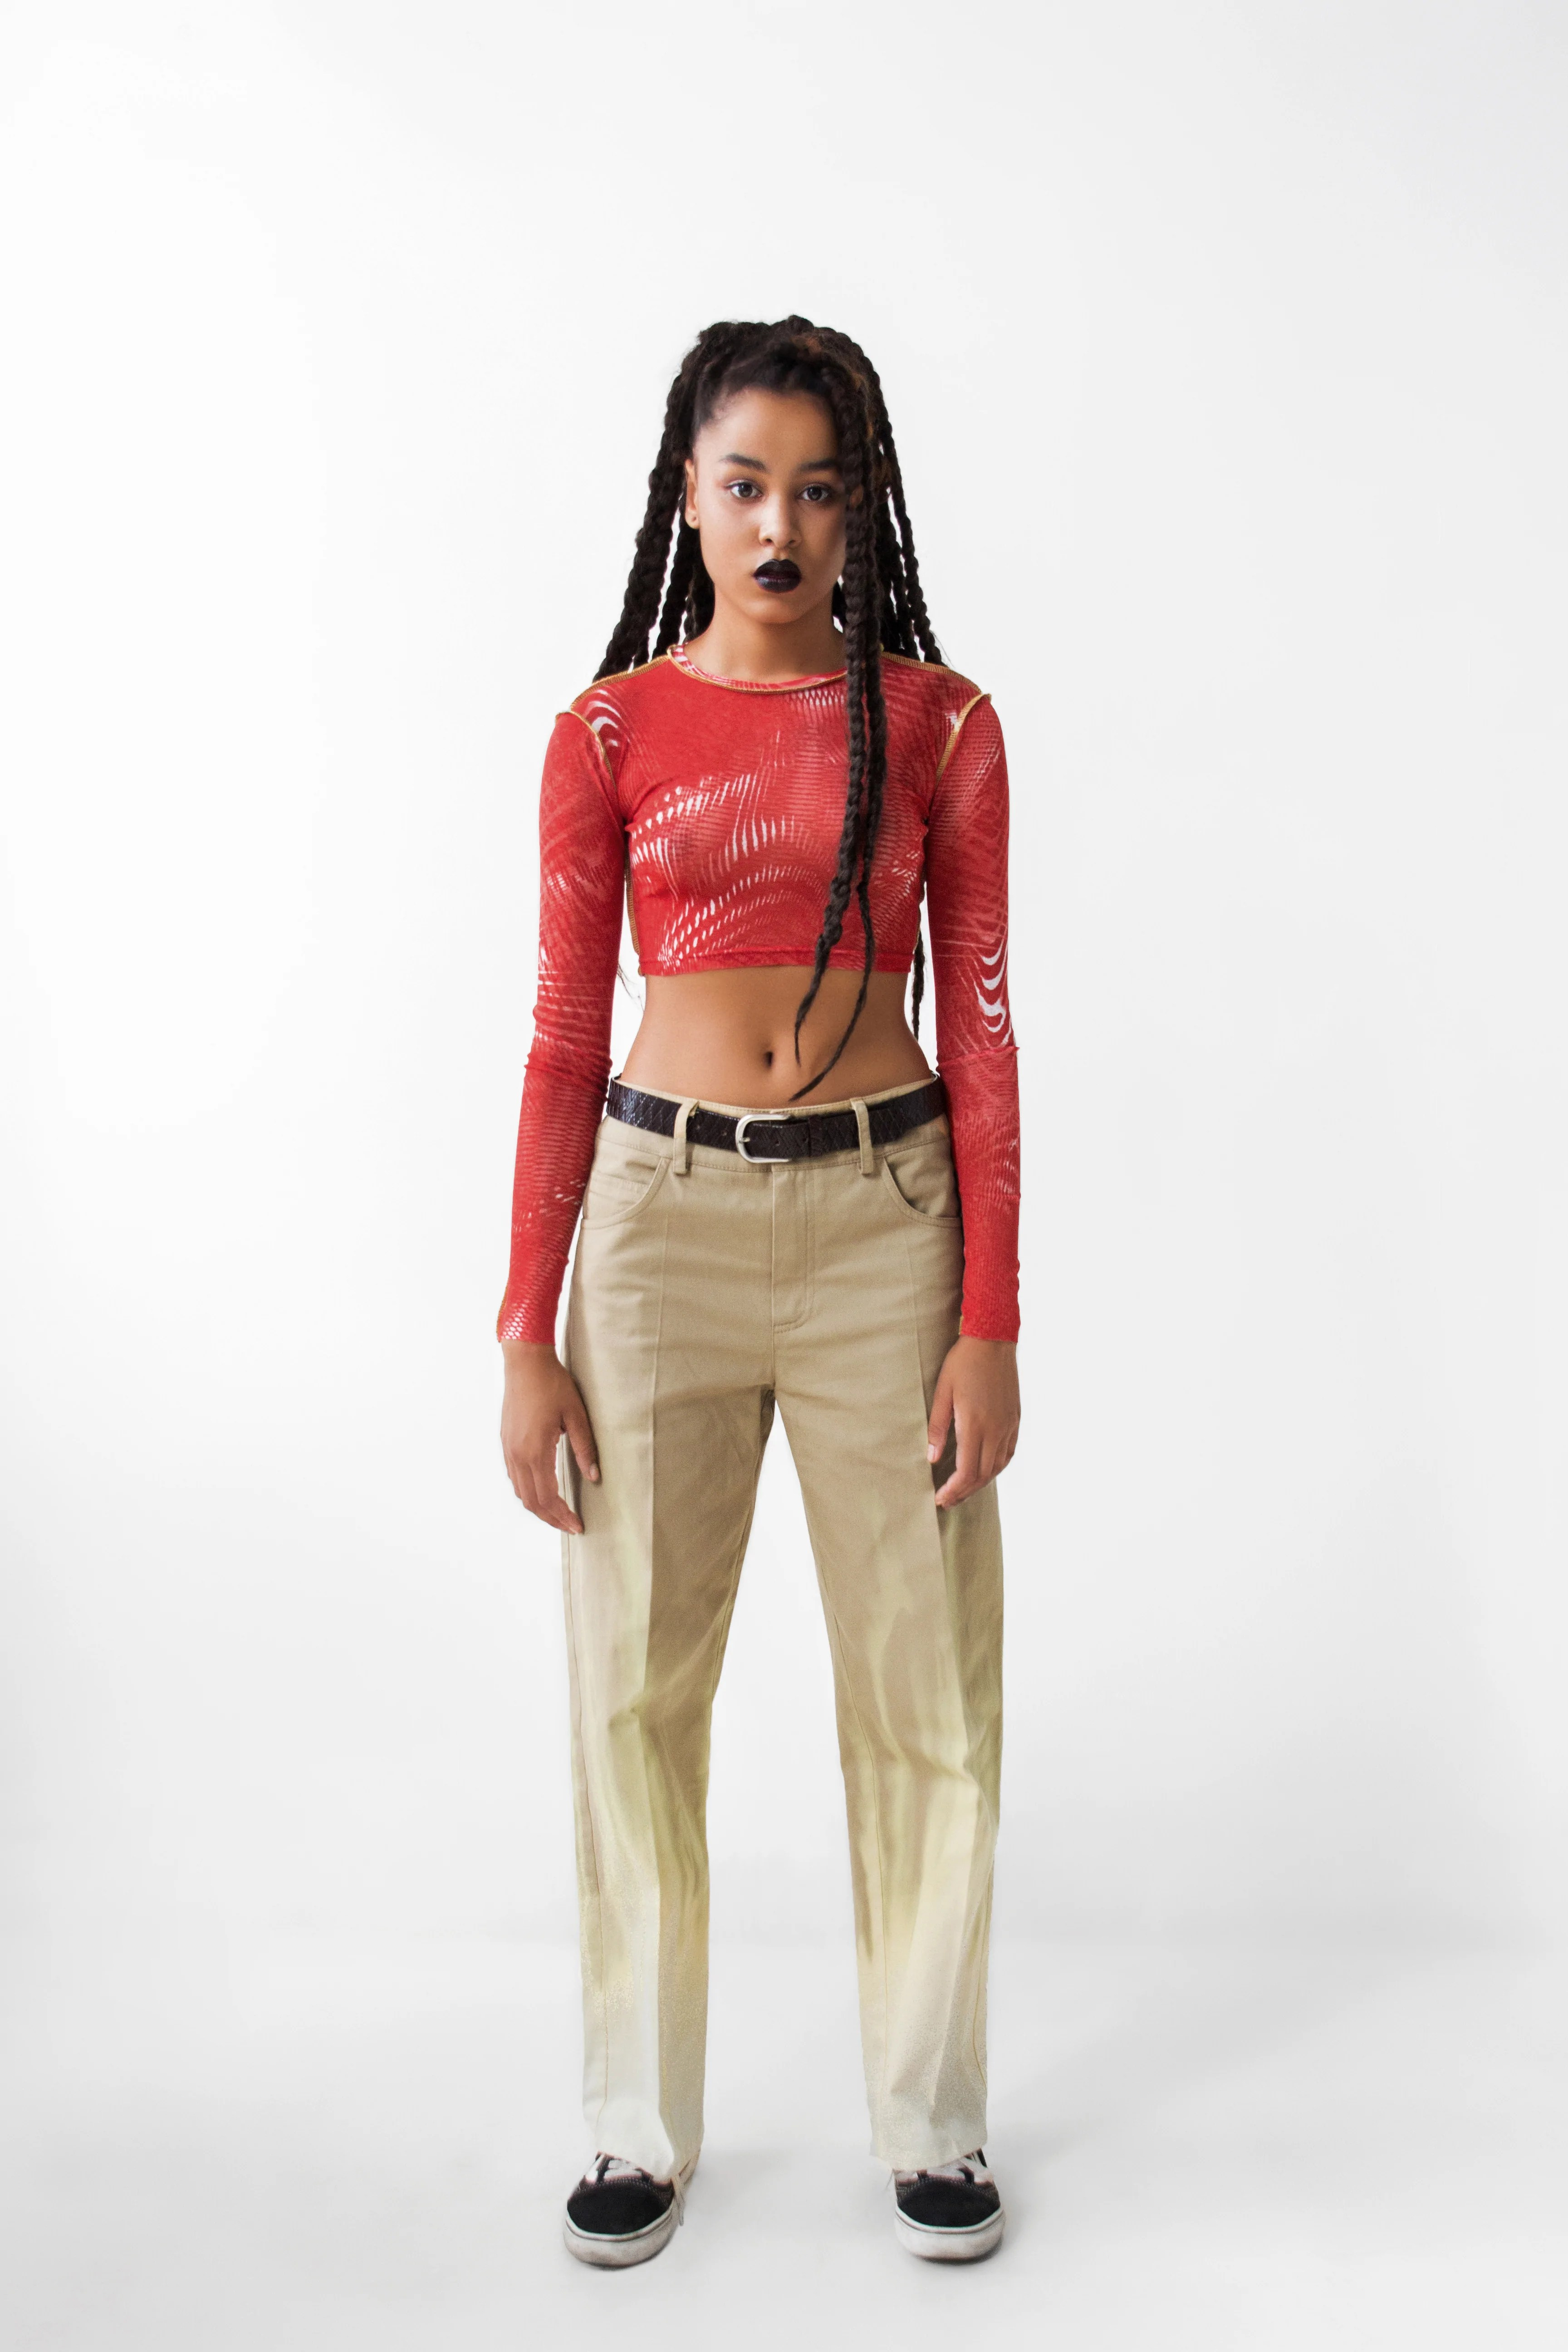 small resolution of red cropped longsleeve